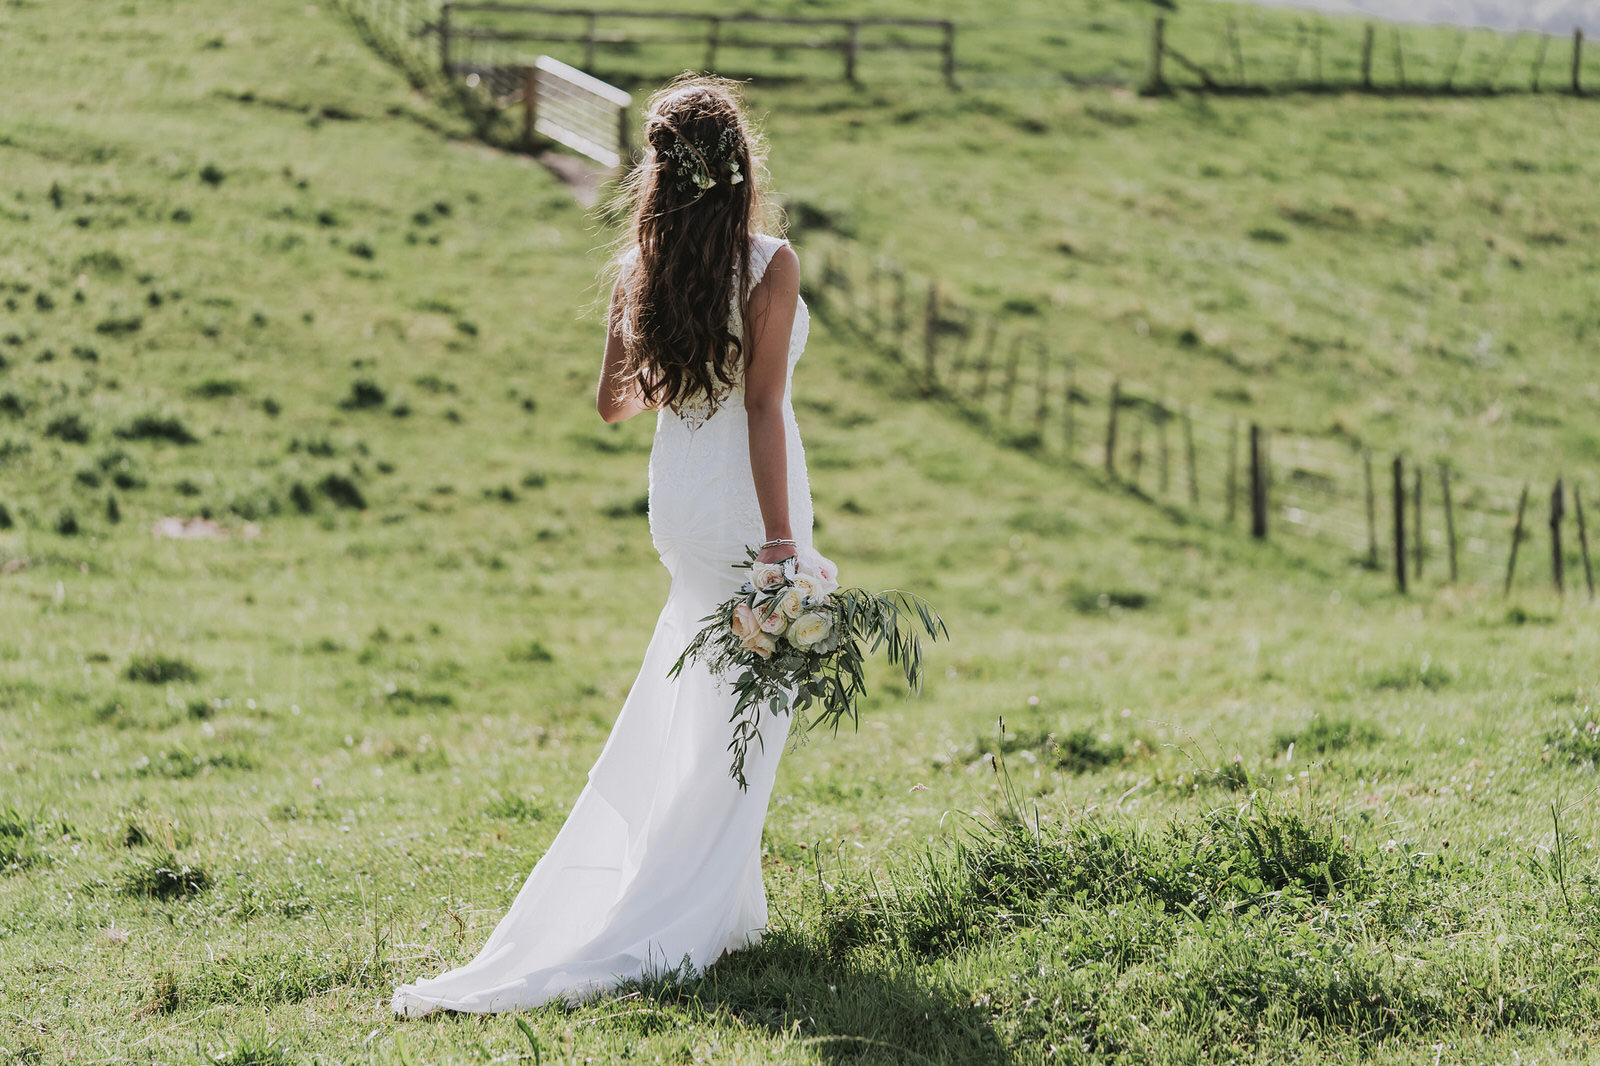 newfound-v-z-eagle-ridge-estate-tauranga-wedding-534